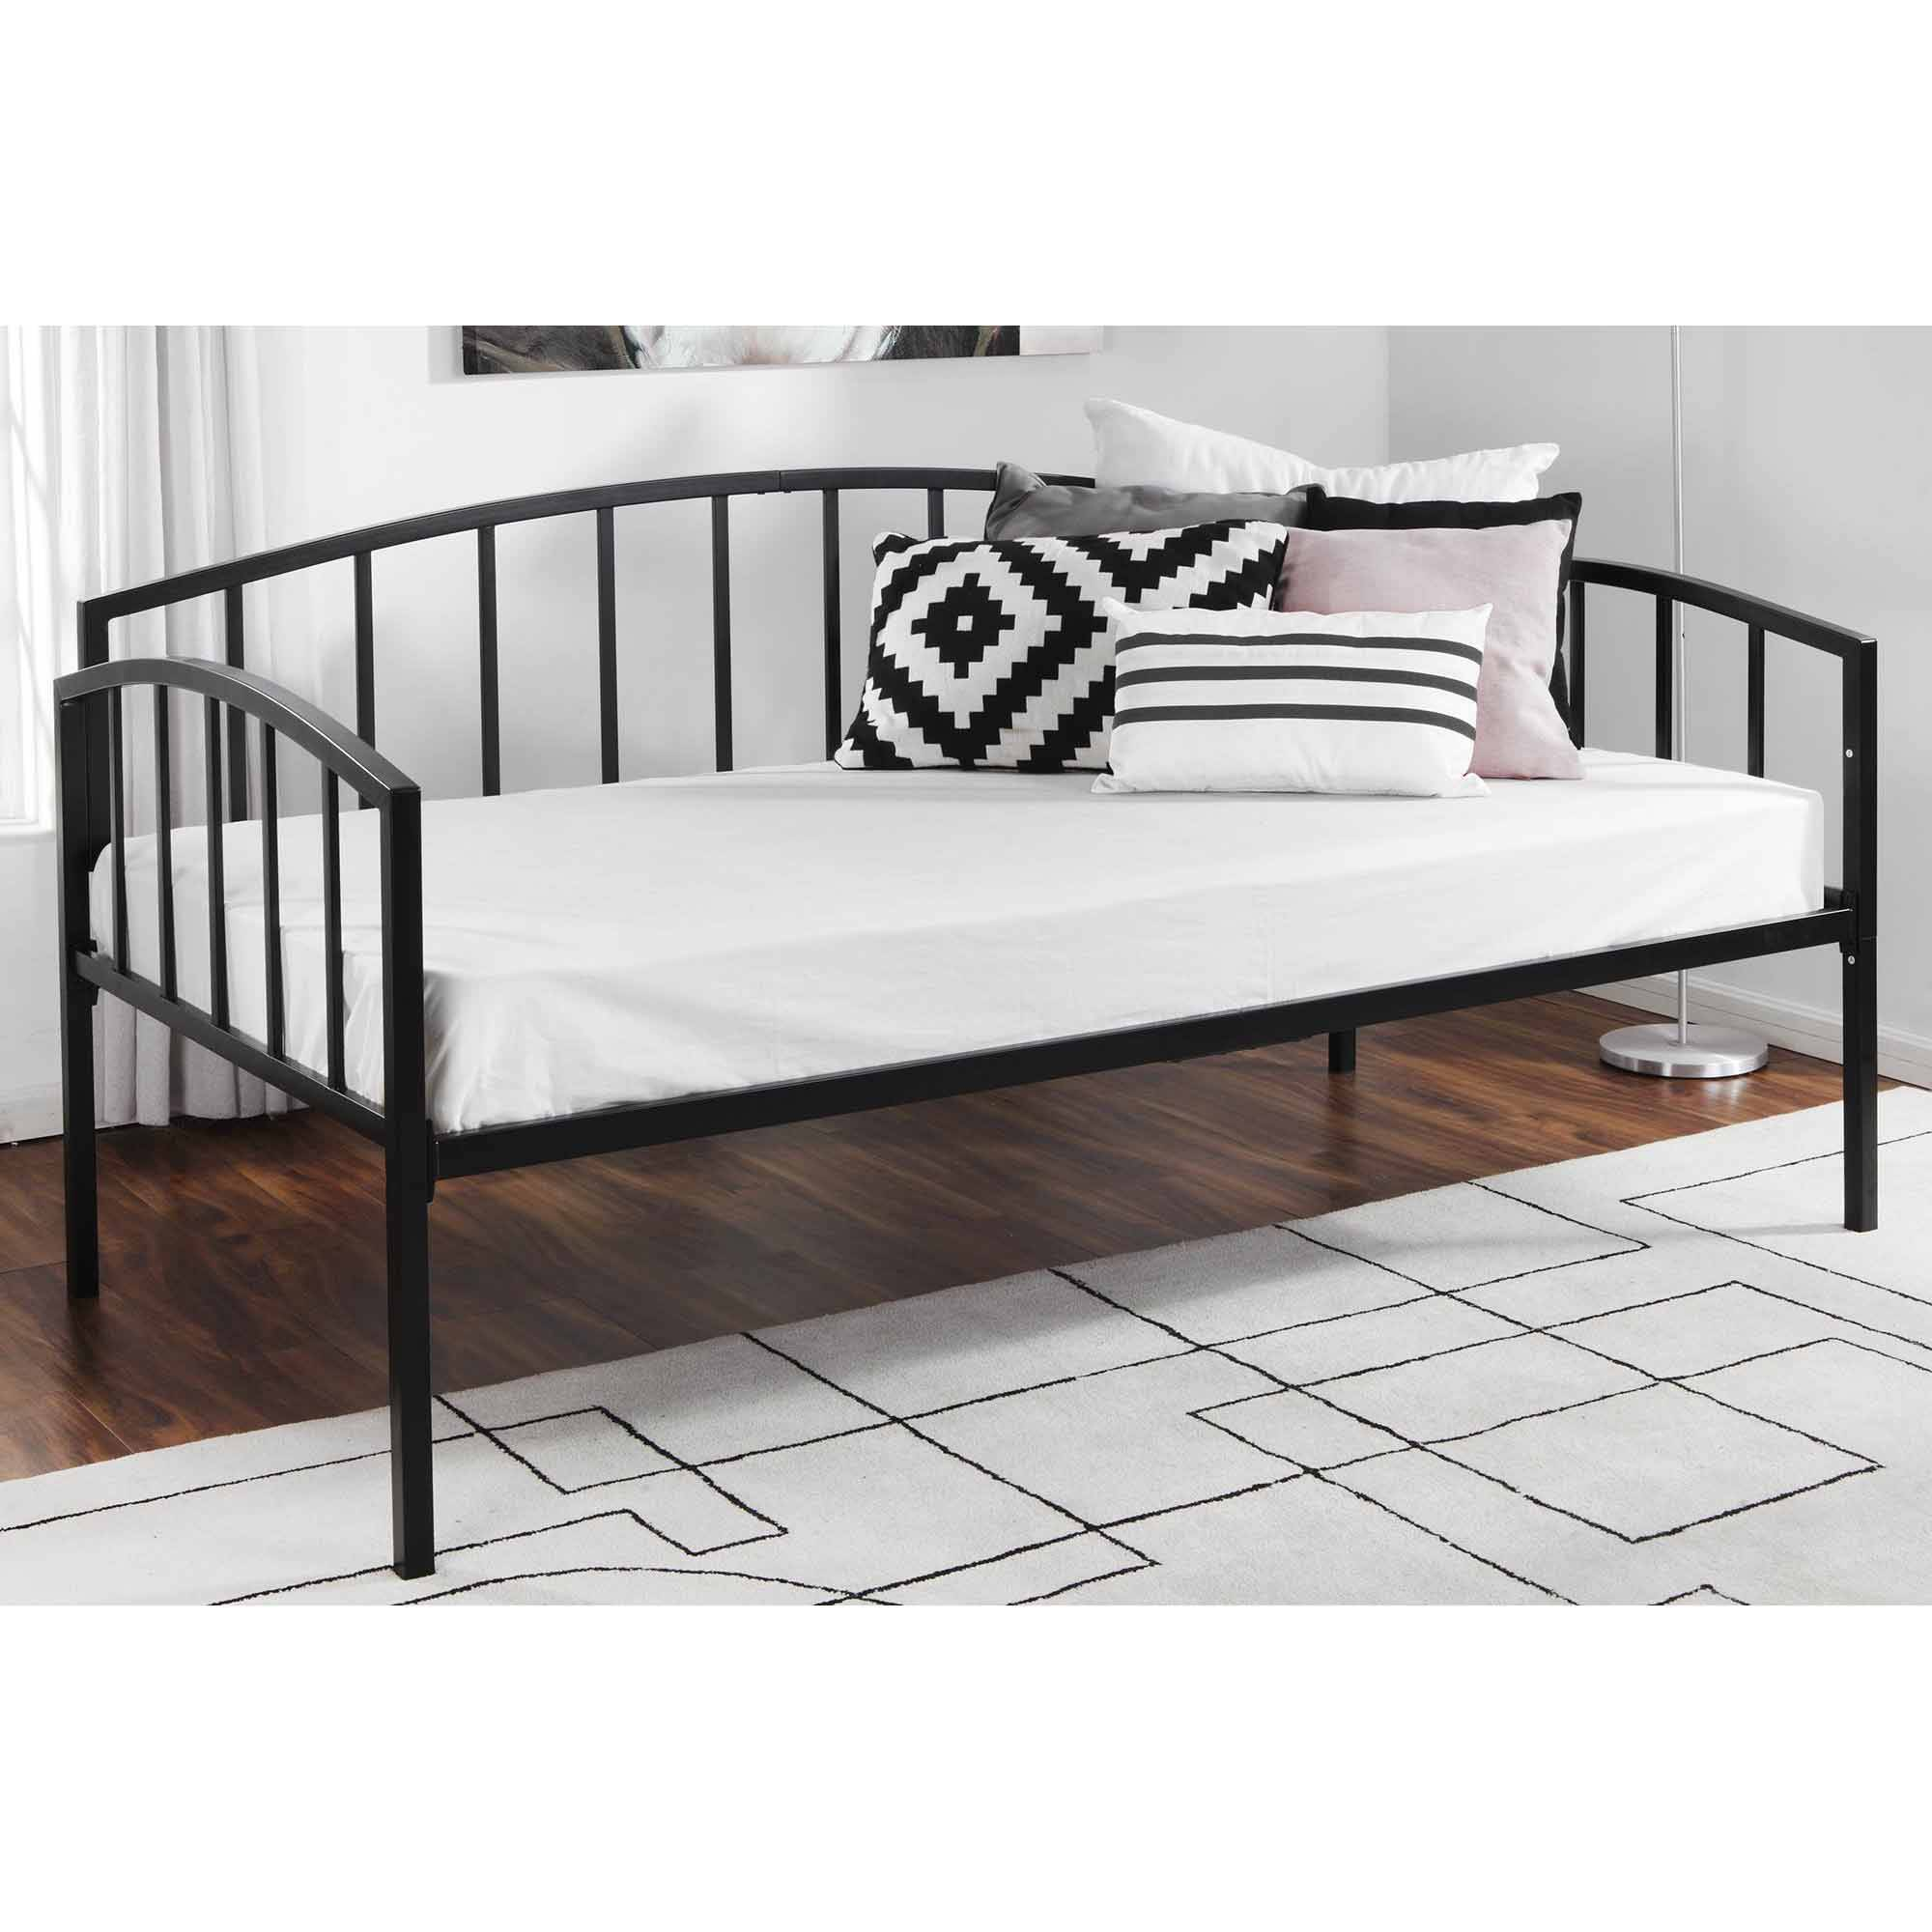 Mainstays Twin Metal Daybed, Black